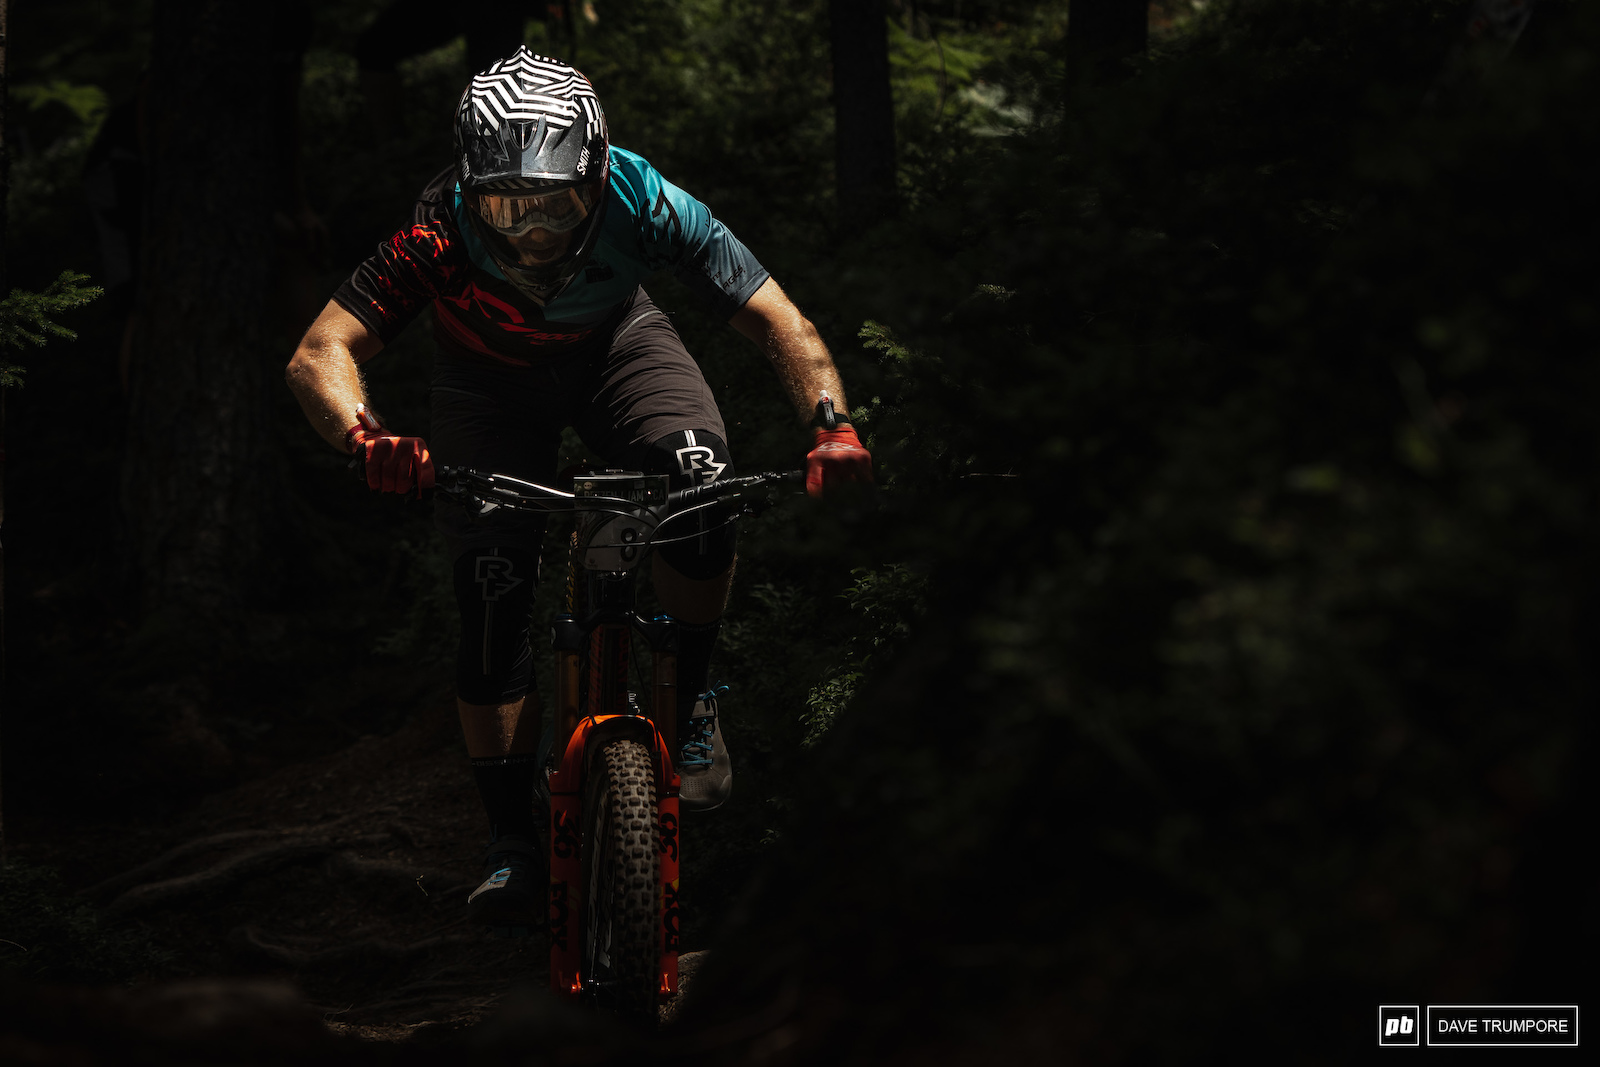 Remi Gauvin tries to spot the good lines through all the dappled light in the woods on top of Stage 1.